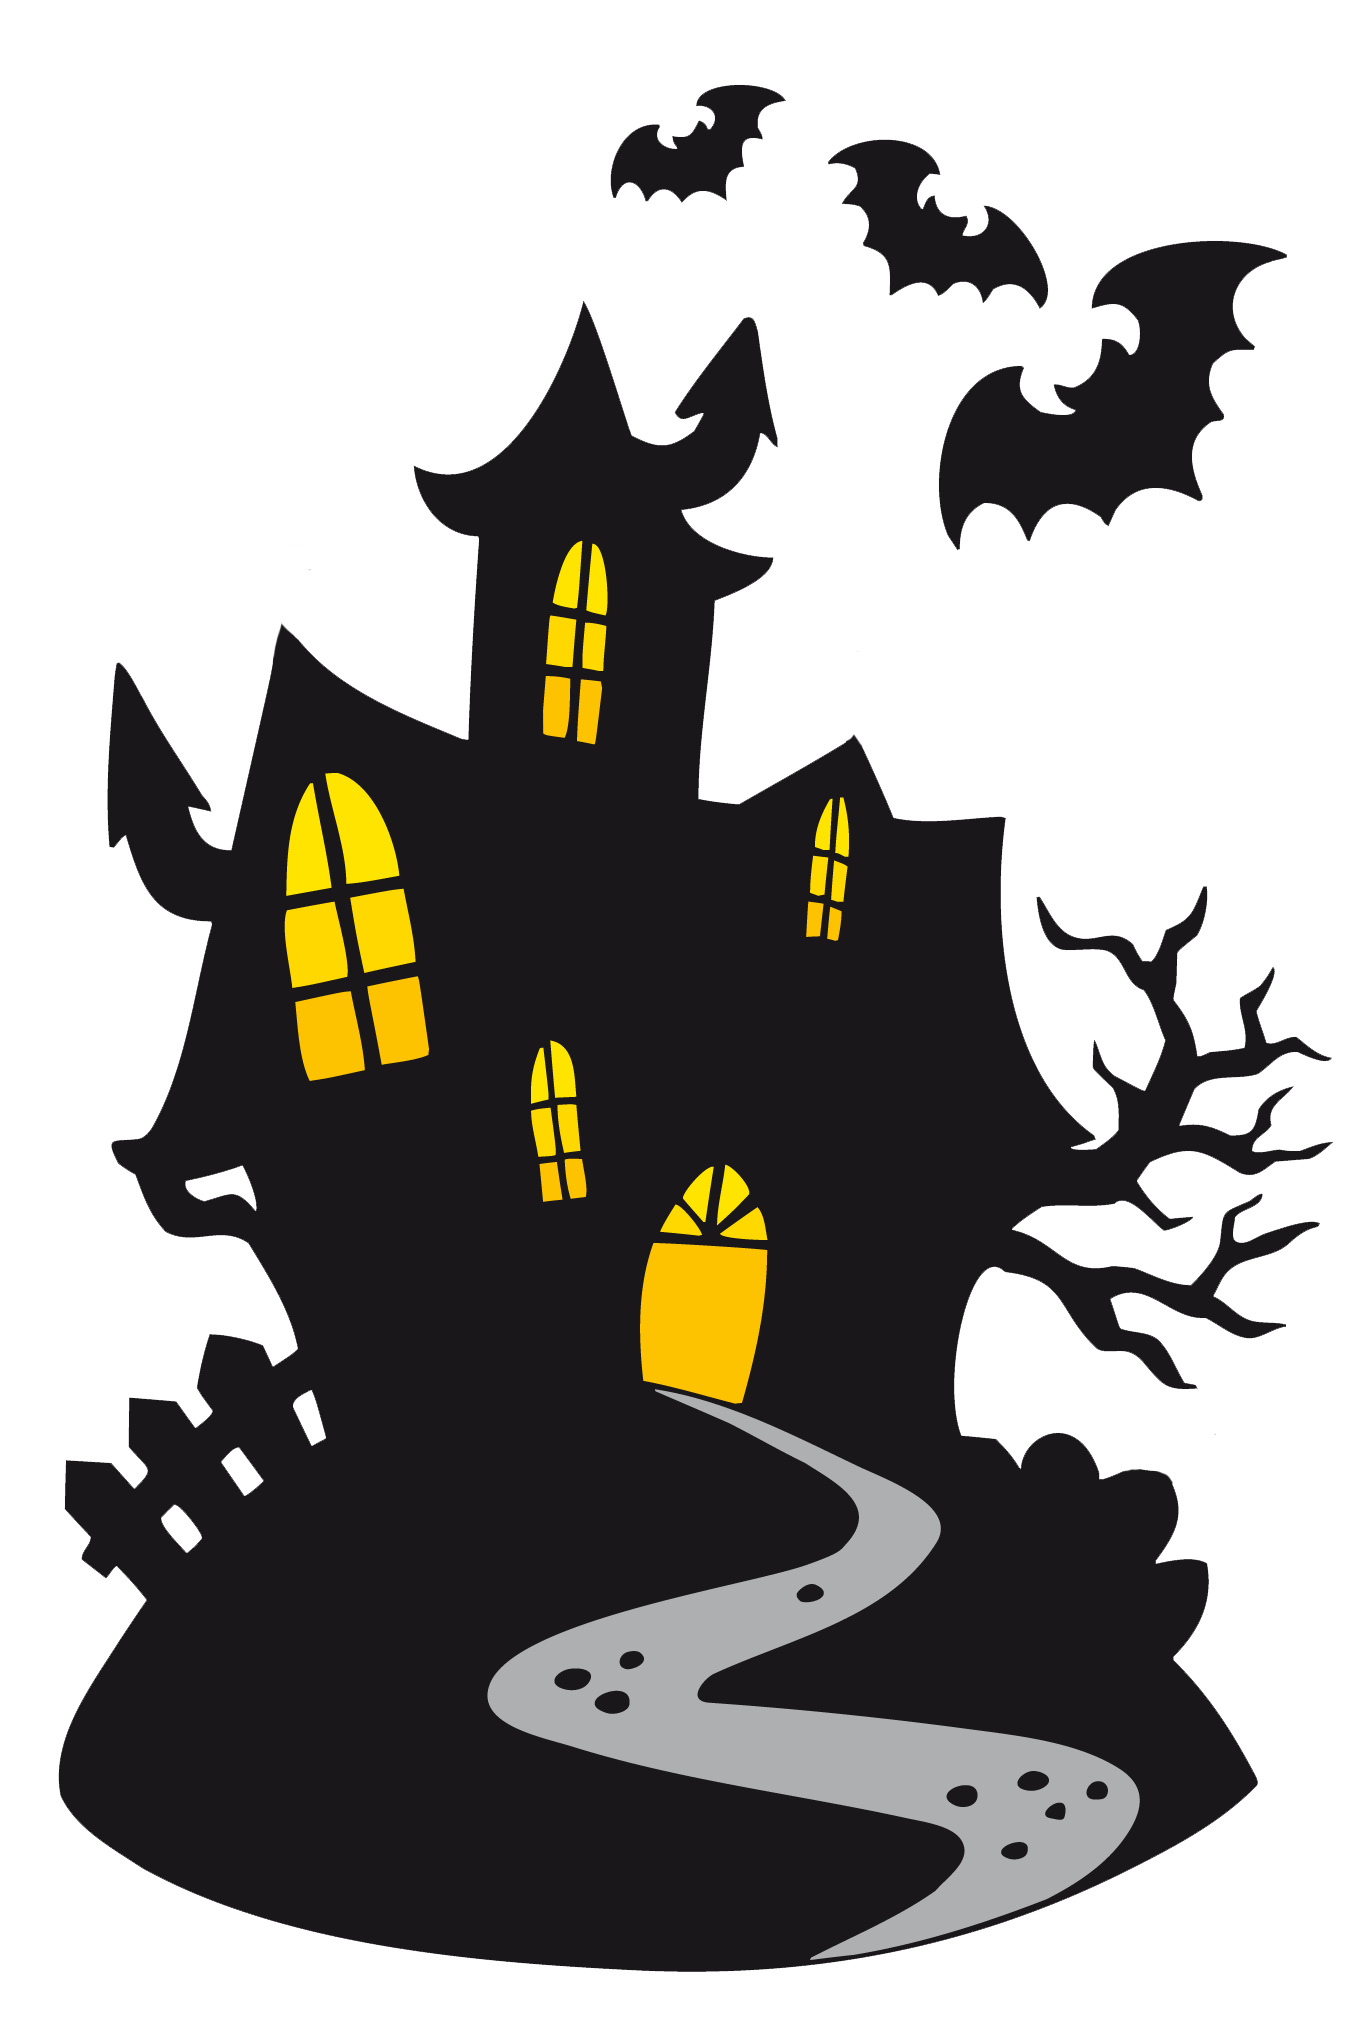 Clipart haunted house image free stock Happy Halloween Clipart Scary | Happy Halloween | Pinterest ... image free stock